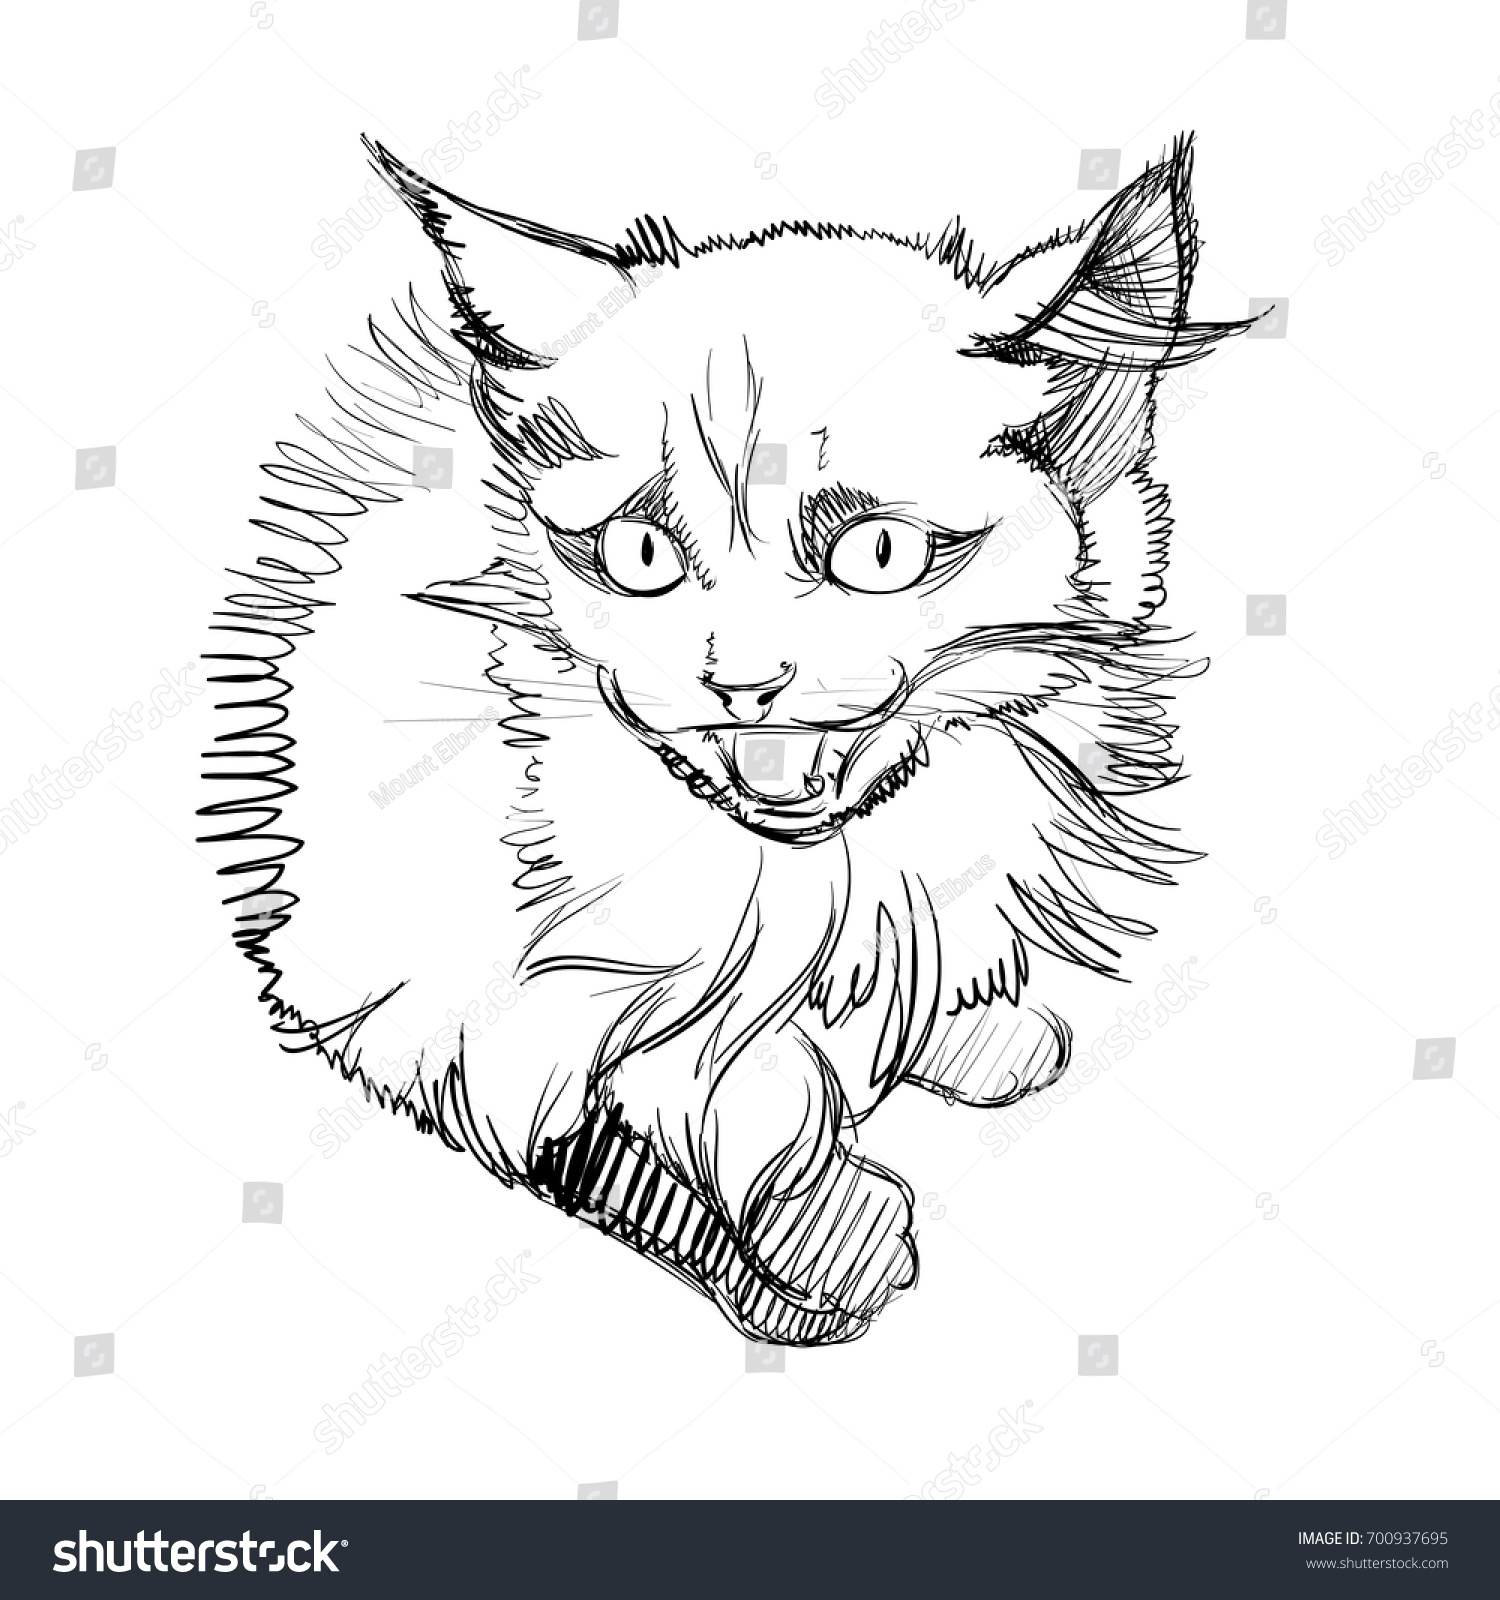 Vector Illustration Adorable Cat Sketched Little Stock Vector